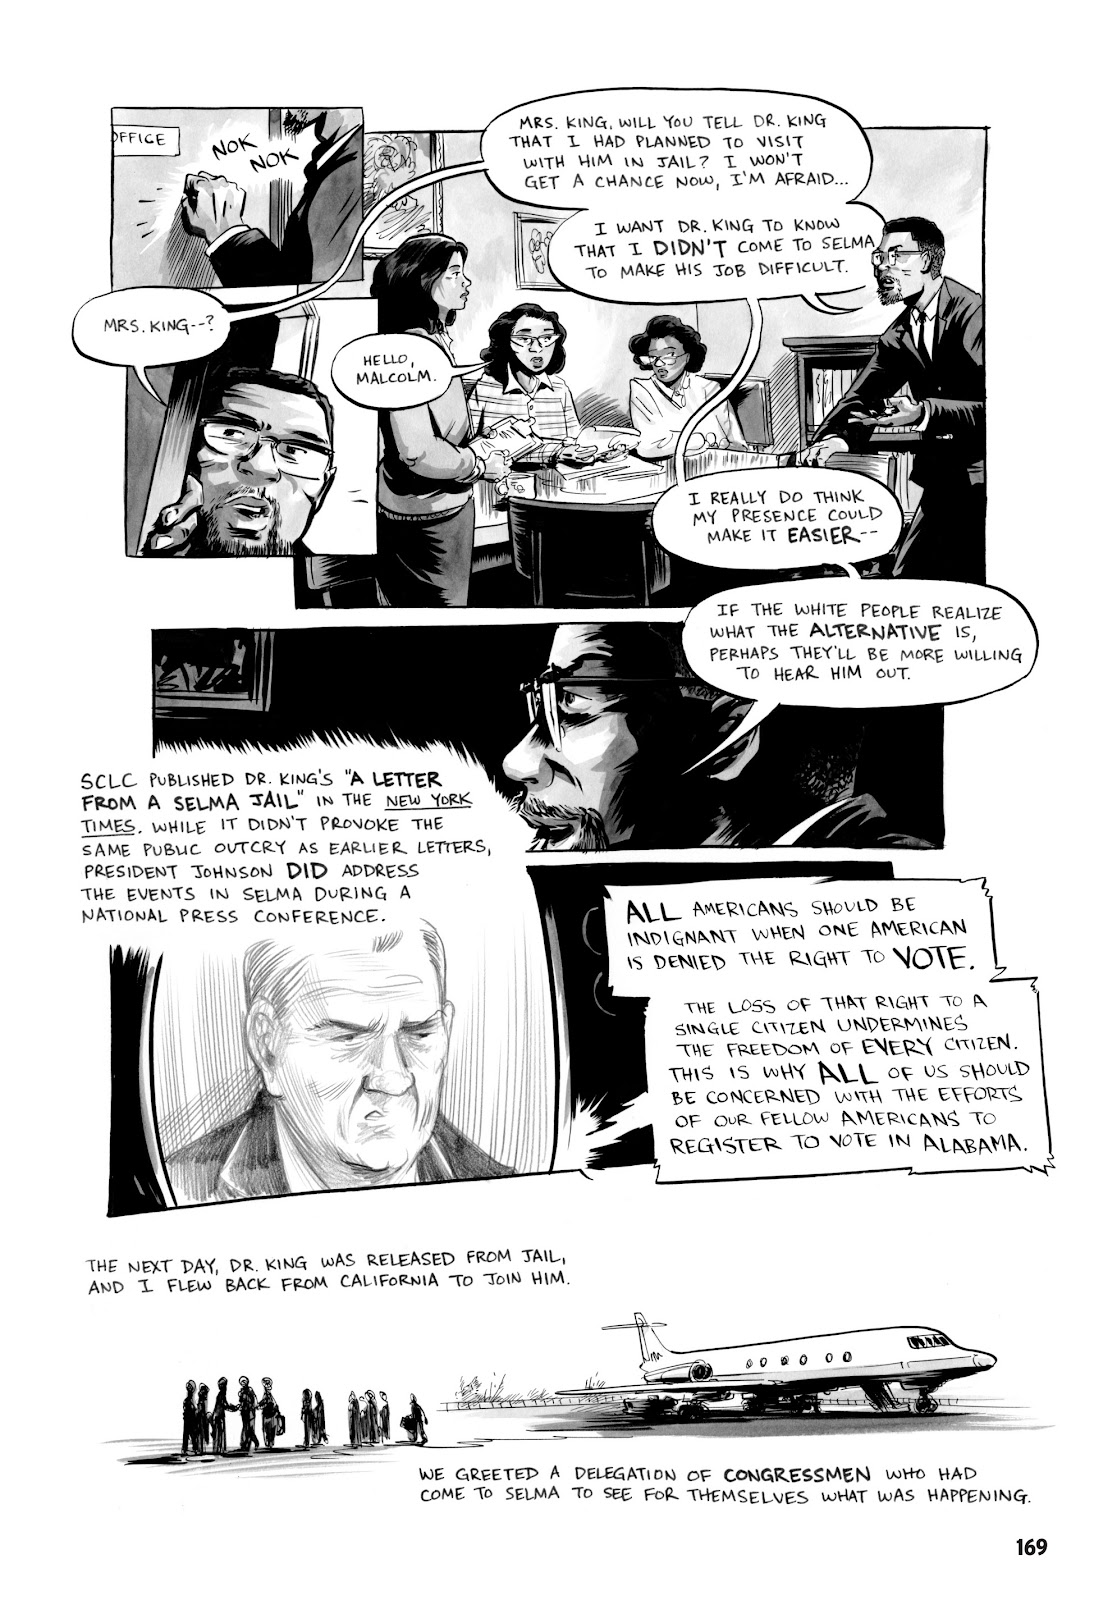 March 3 Page 163